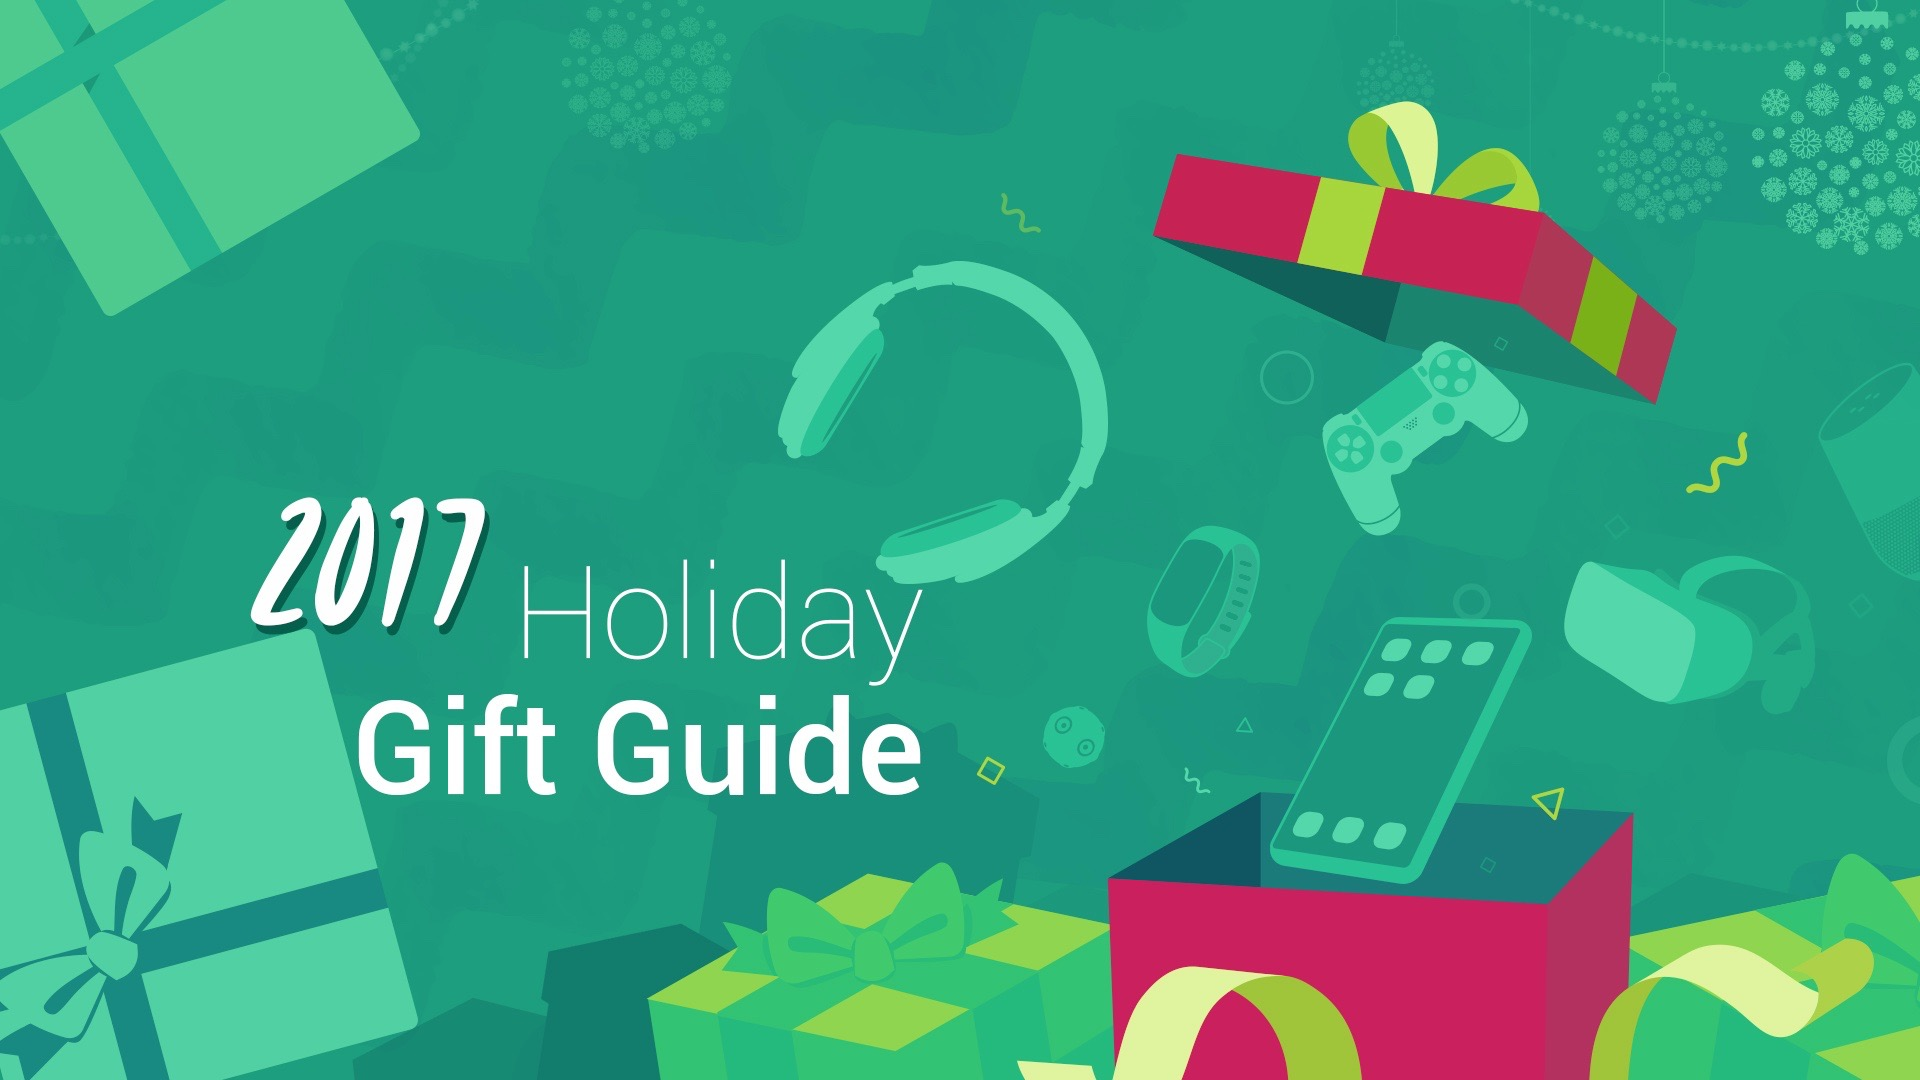 ac-gift-guide-holiday-2017.jpg?itok=JKyS